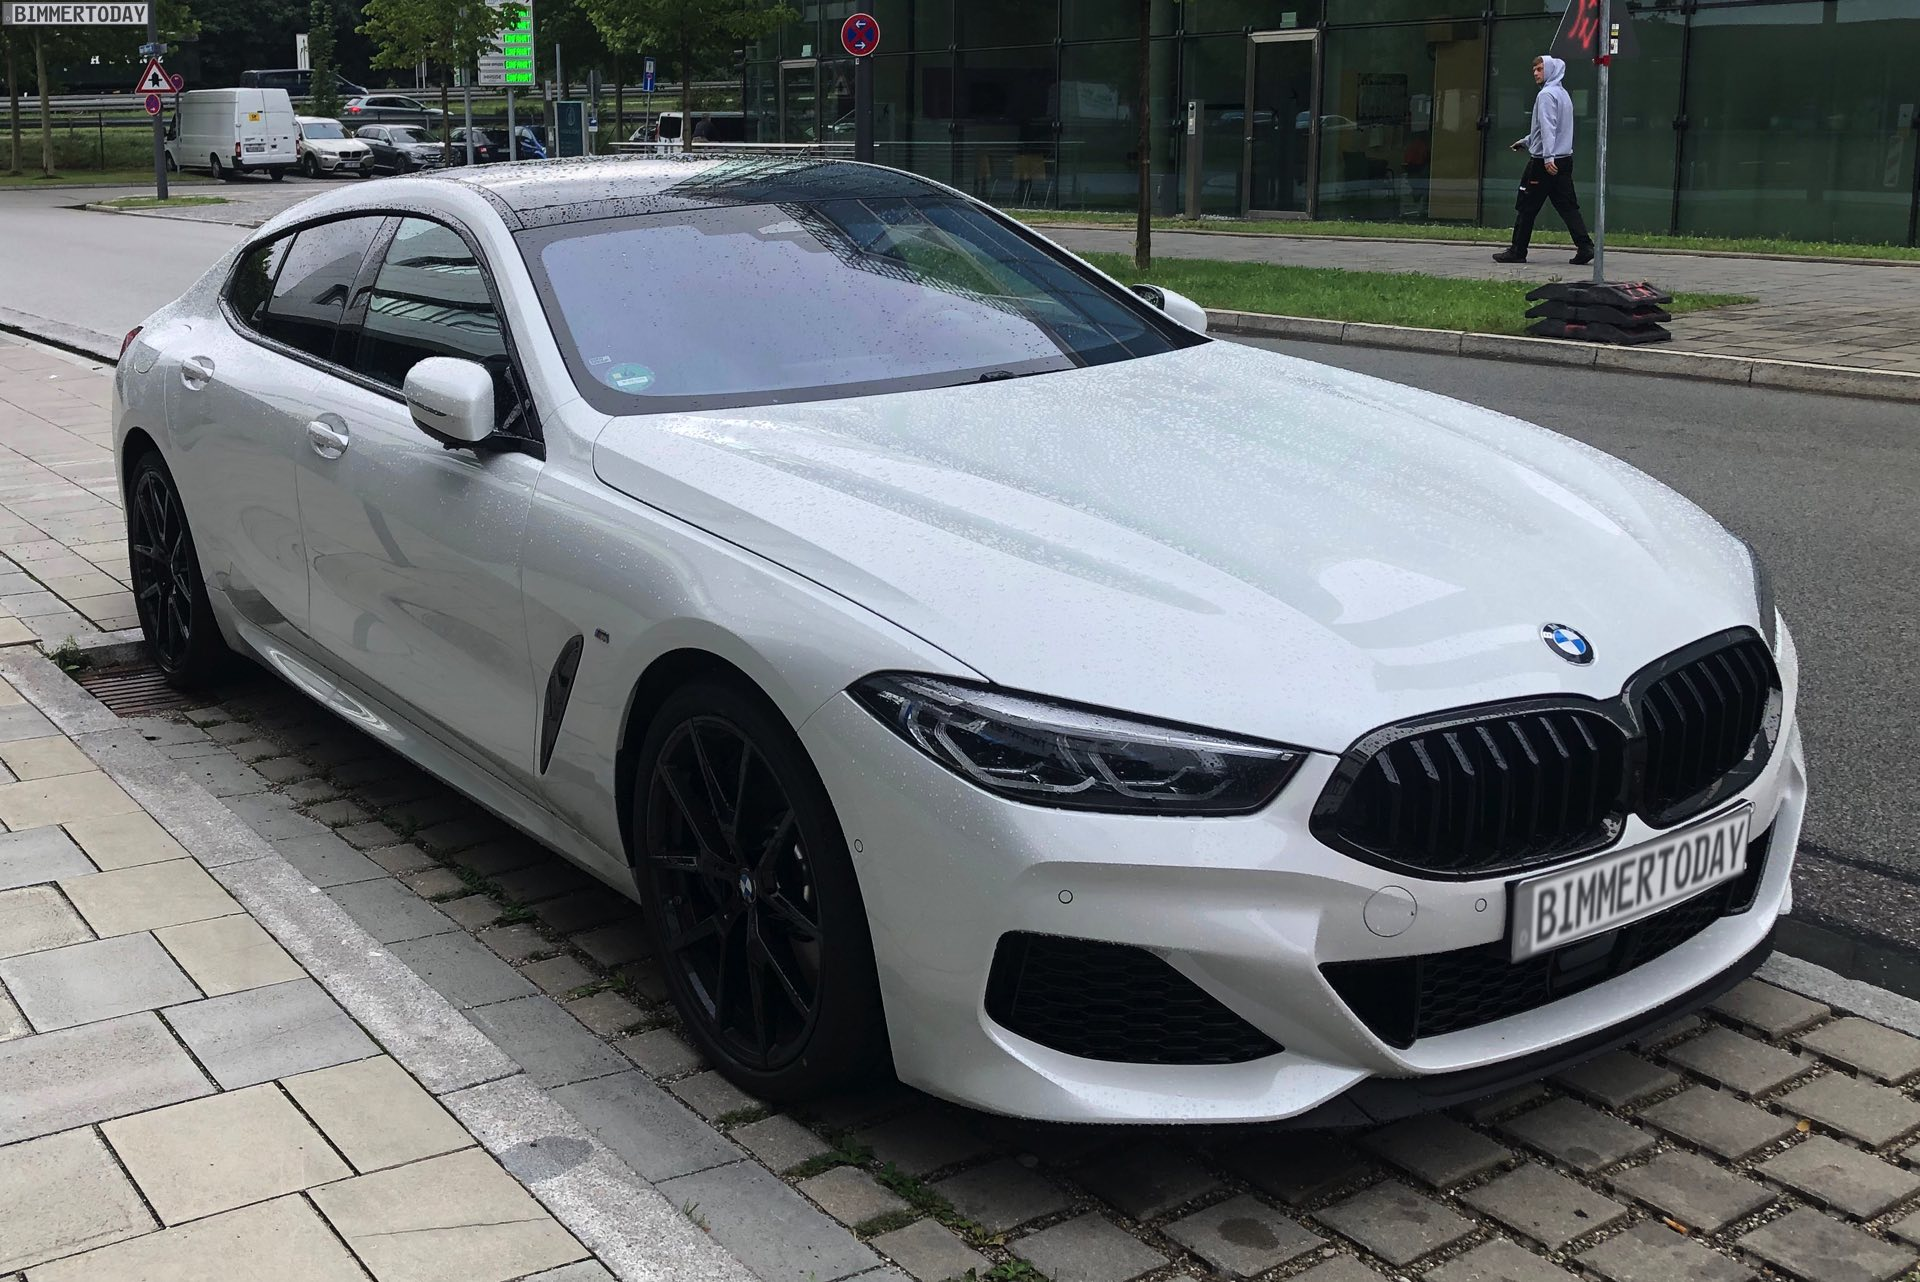 2020 Bmw M8 Gran Coupe White